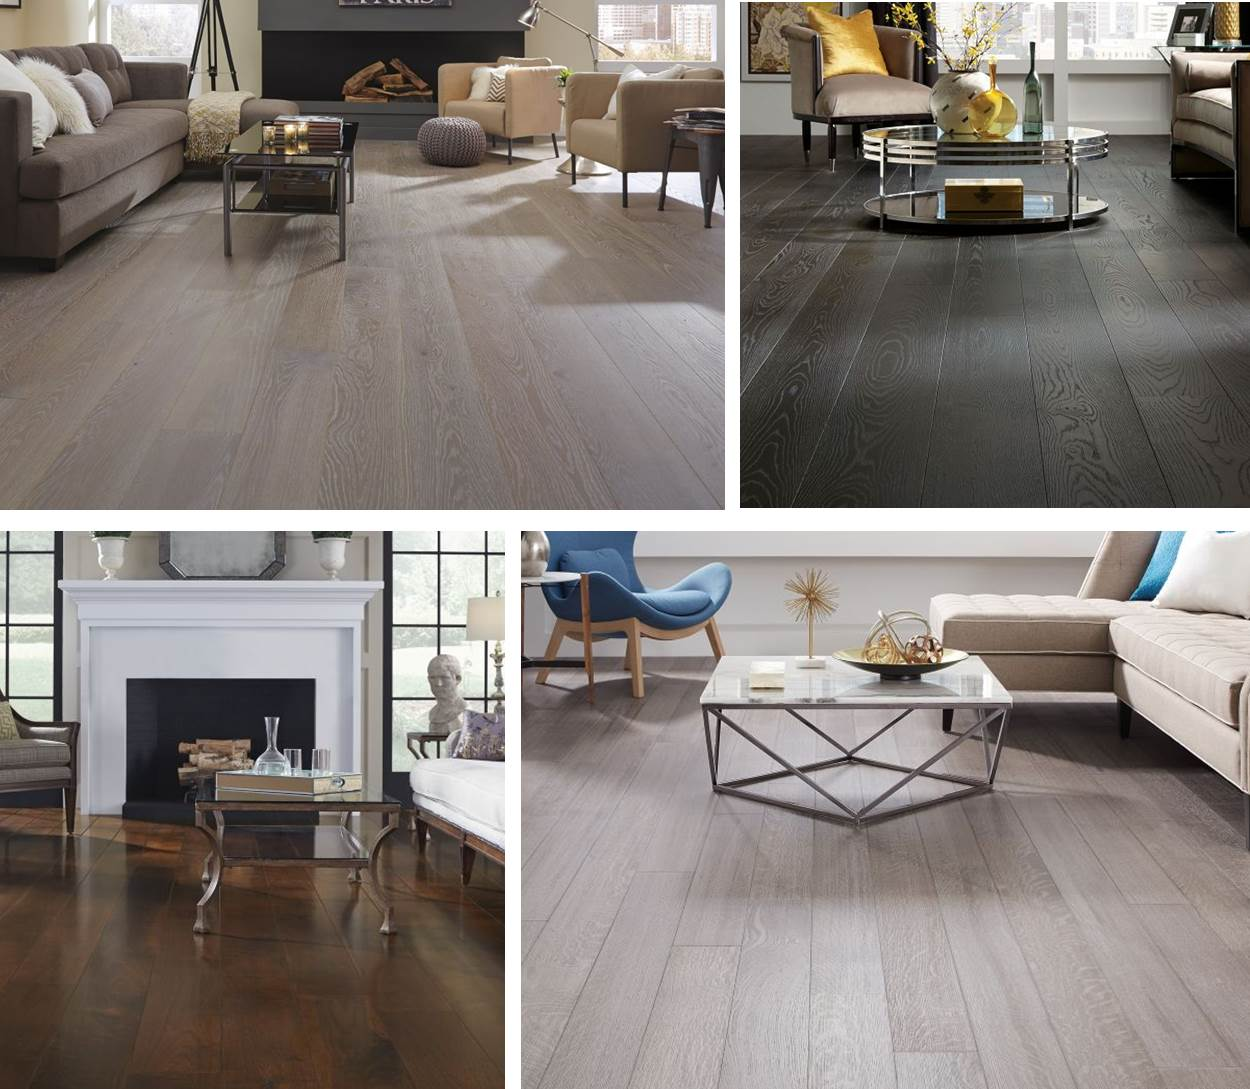 Modern Wood Floors & Formal Wood Flooring - Wide Plank Floors For Any Design Carlisle Wide Plank Floors